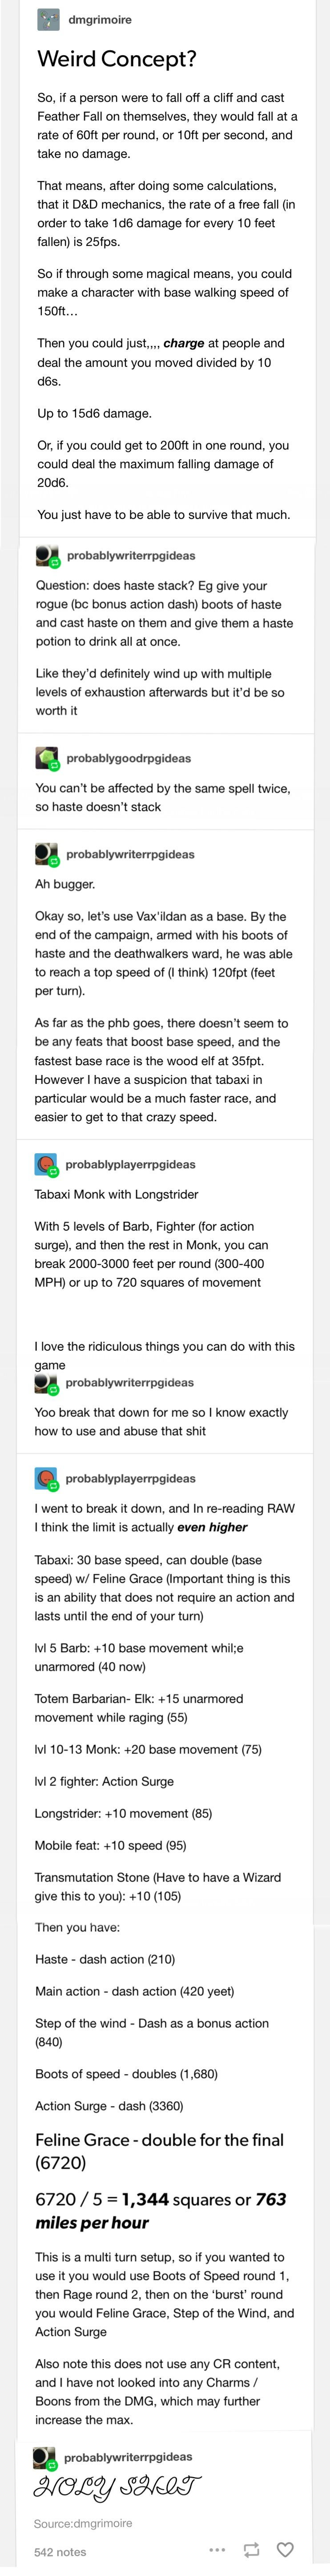 Pen And Dice Make A Character Dungeons And Dragons Homebrew He Is Able Seems fun and logical to me that a tabaxi monk would move like a blur in combat. pinterest